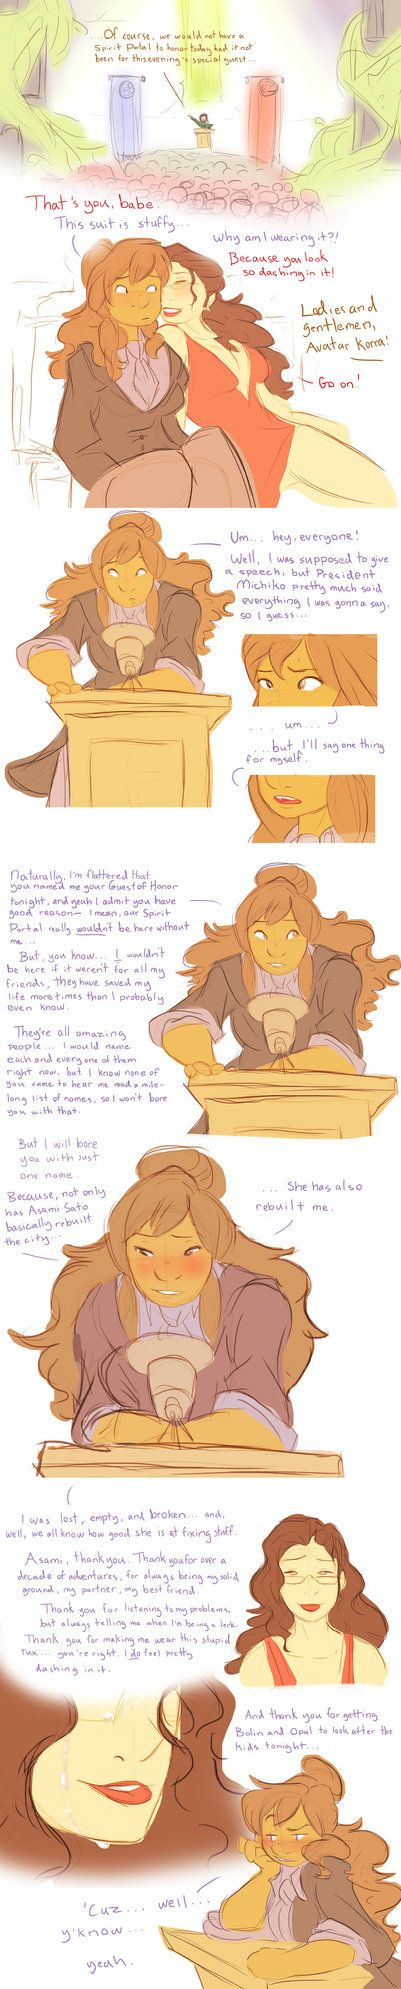 10 Years Later (Korrasami Month 2016) by ChoralSeashelle